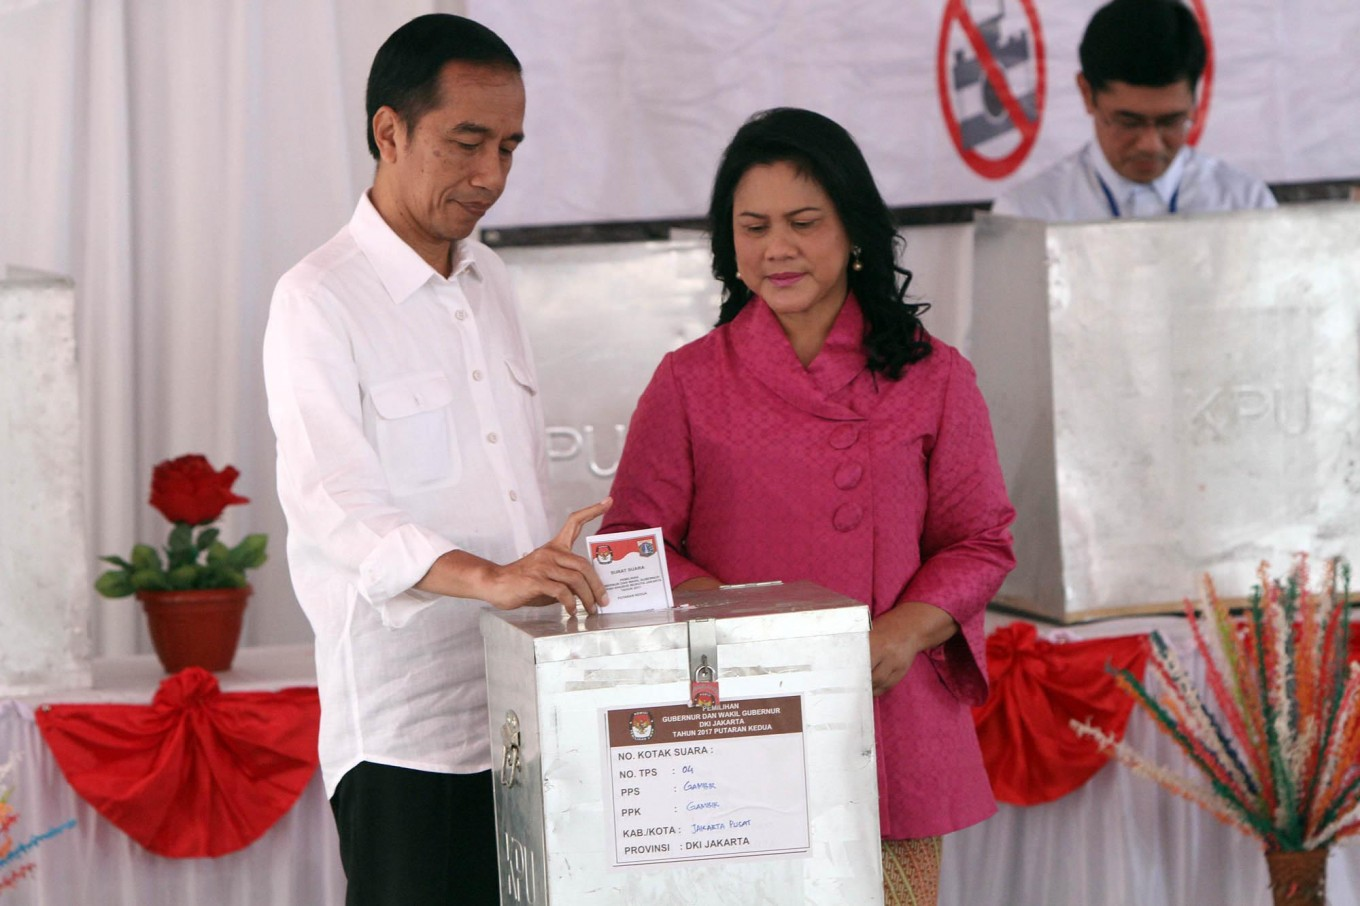 Don't let politics divide us, Jokowi says